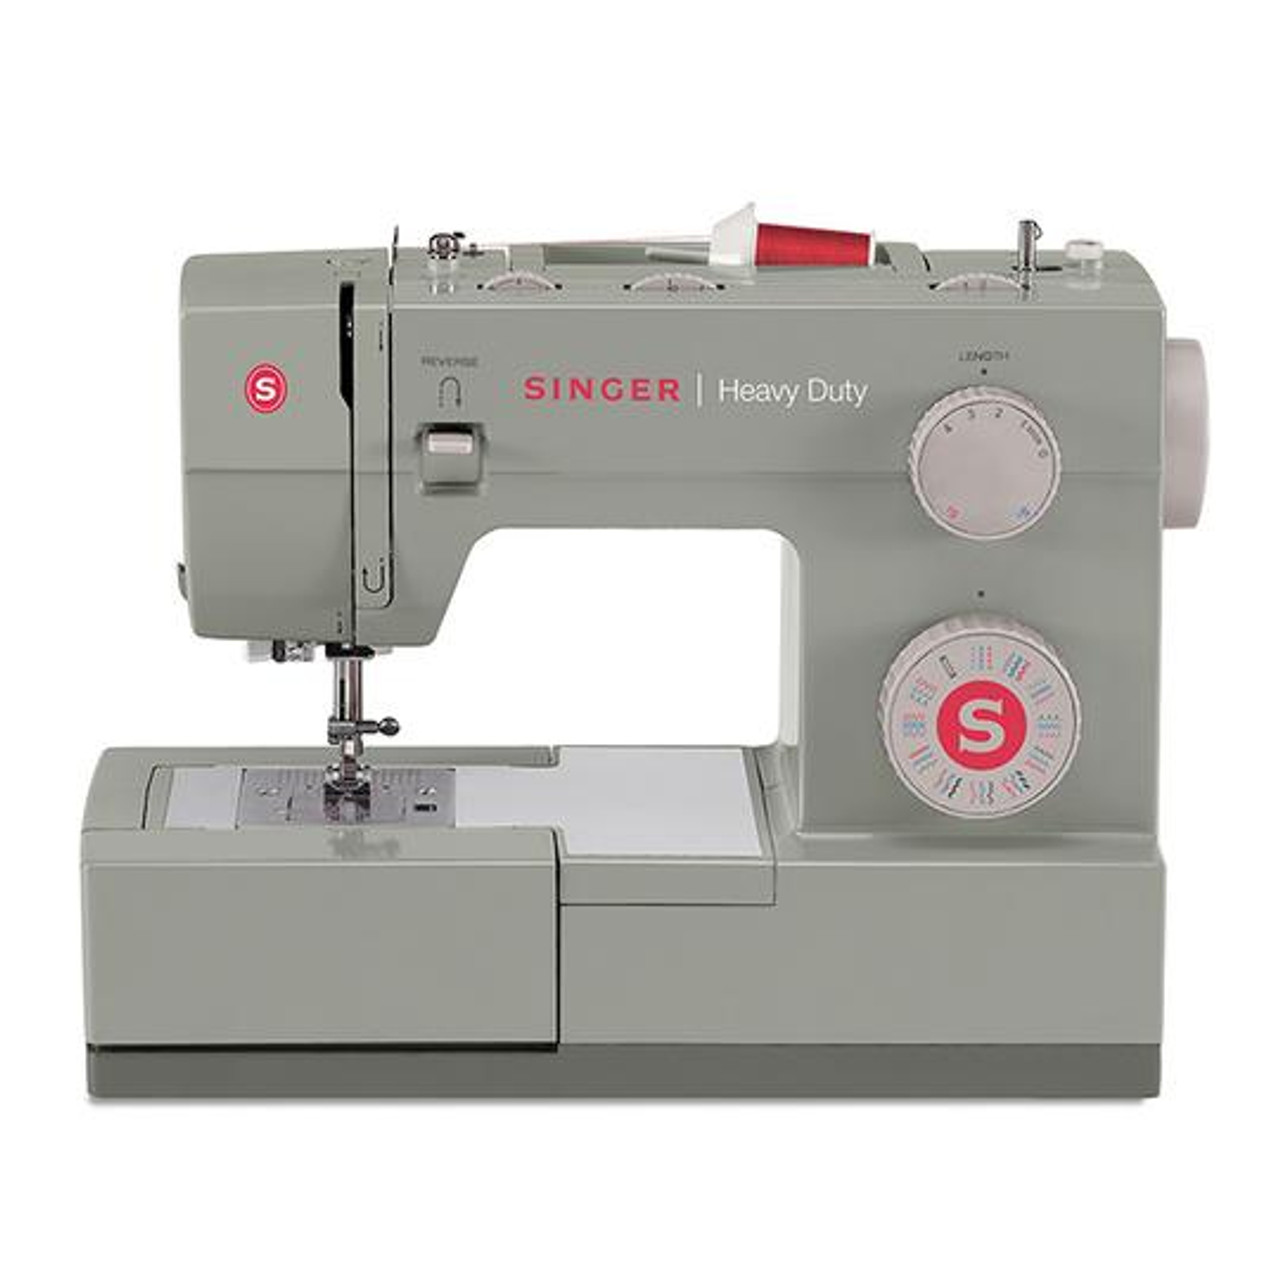 Singer HD4452 Heavy Duty Sewing Machine with needle threader